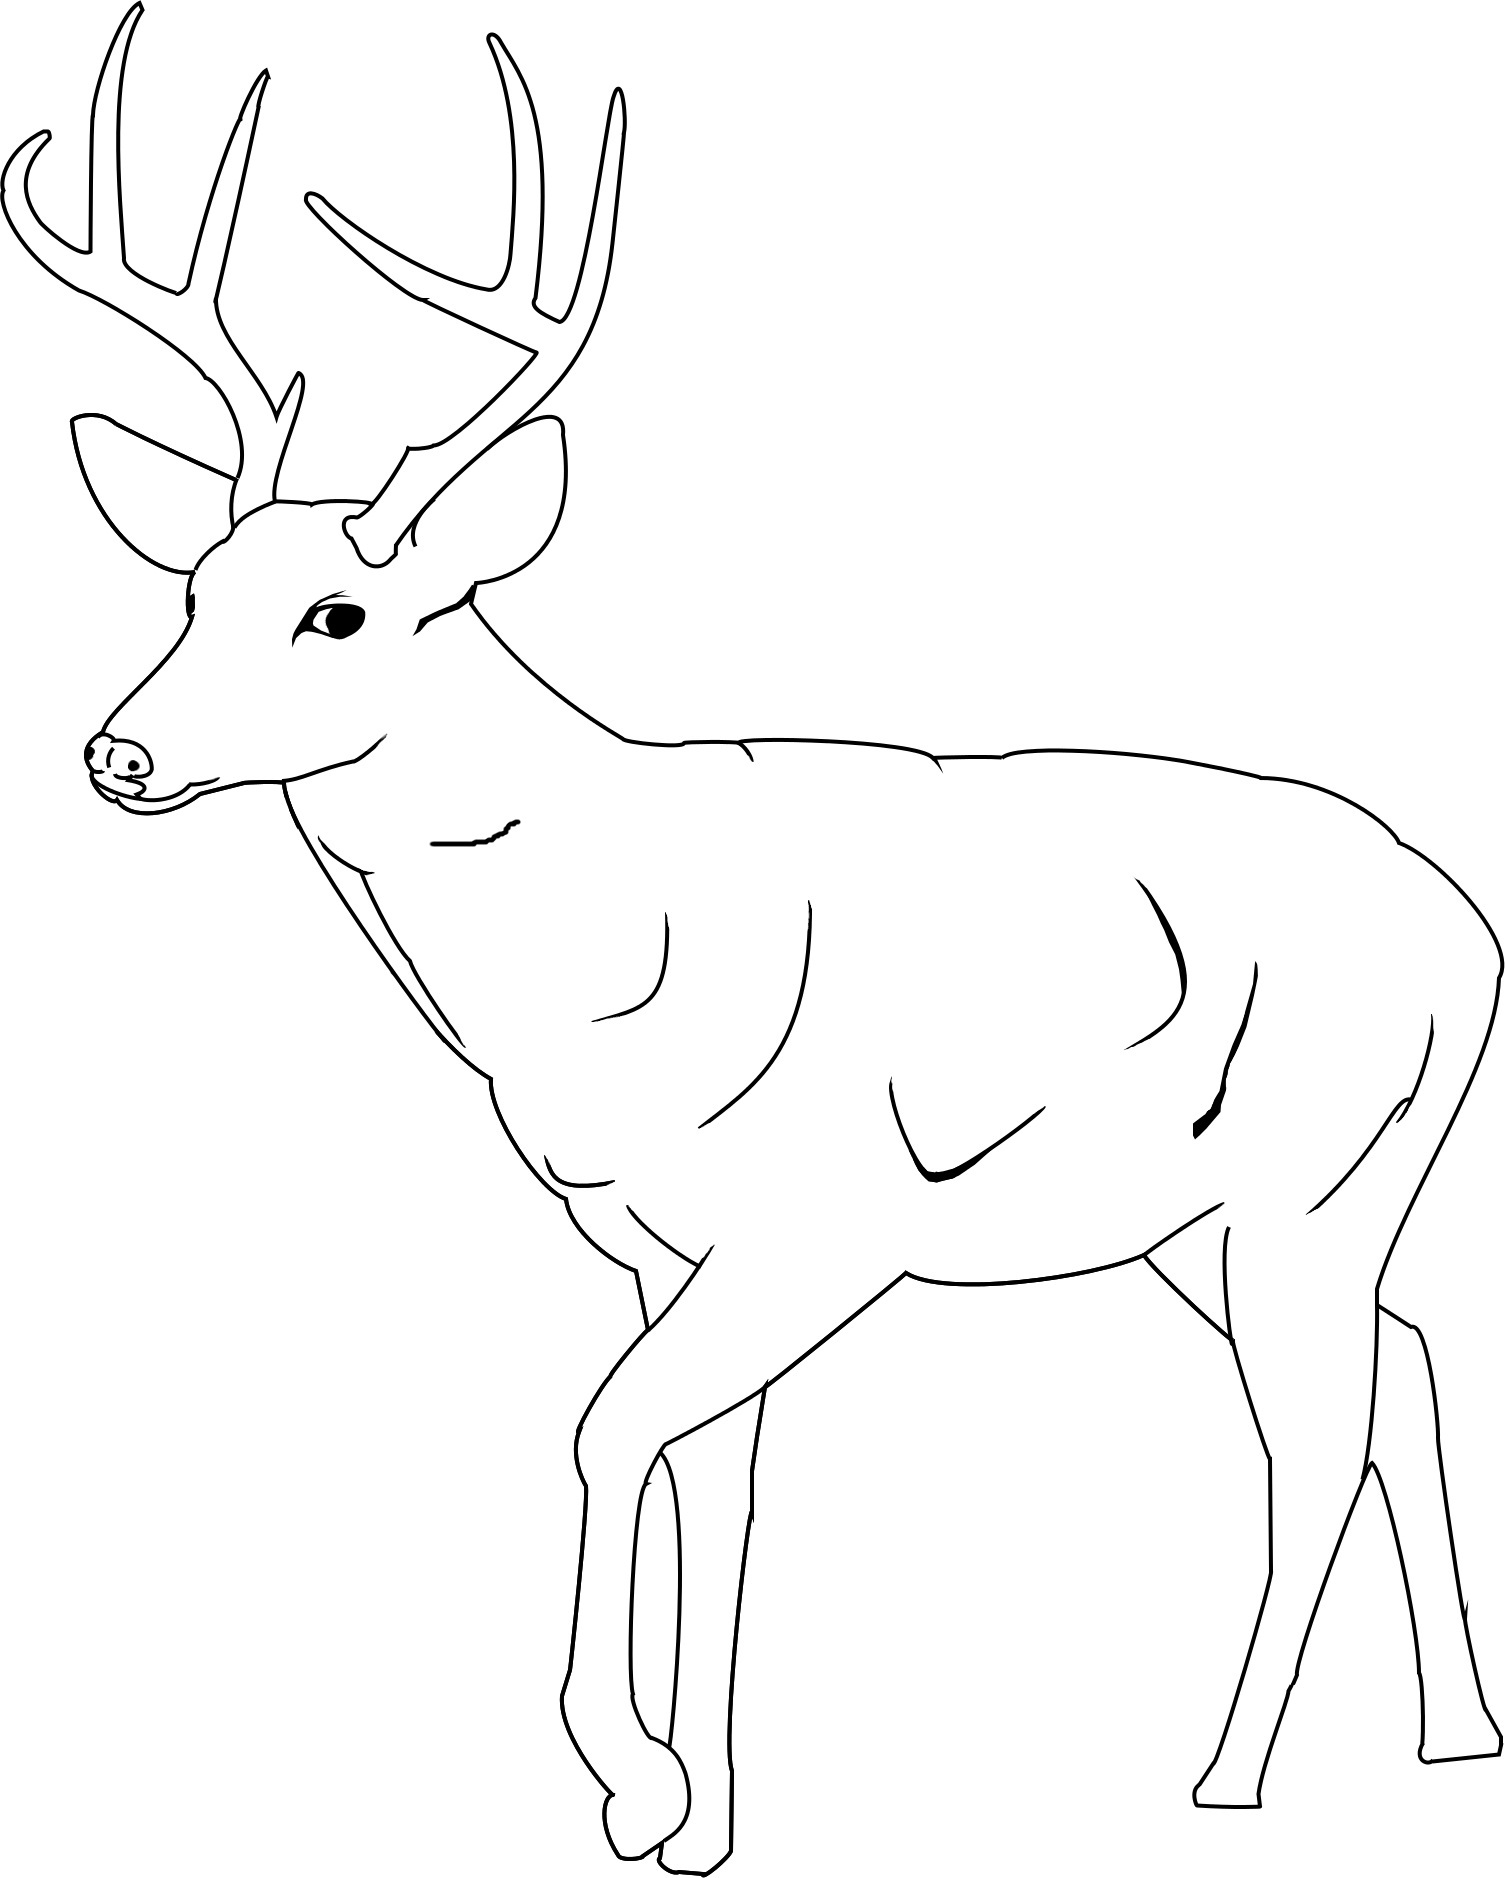 1505x1878 Deer Coloring Pages For Kids